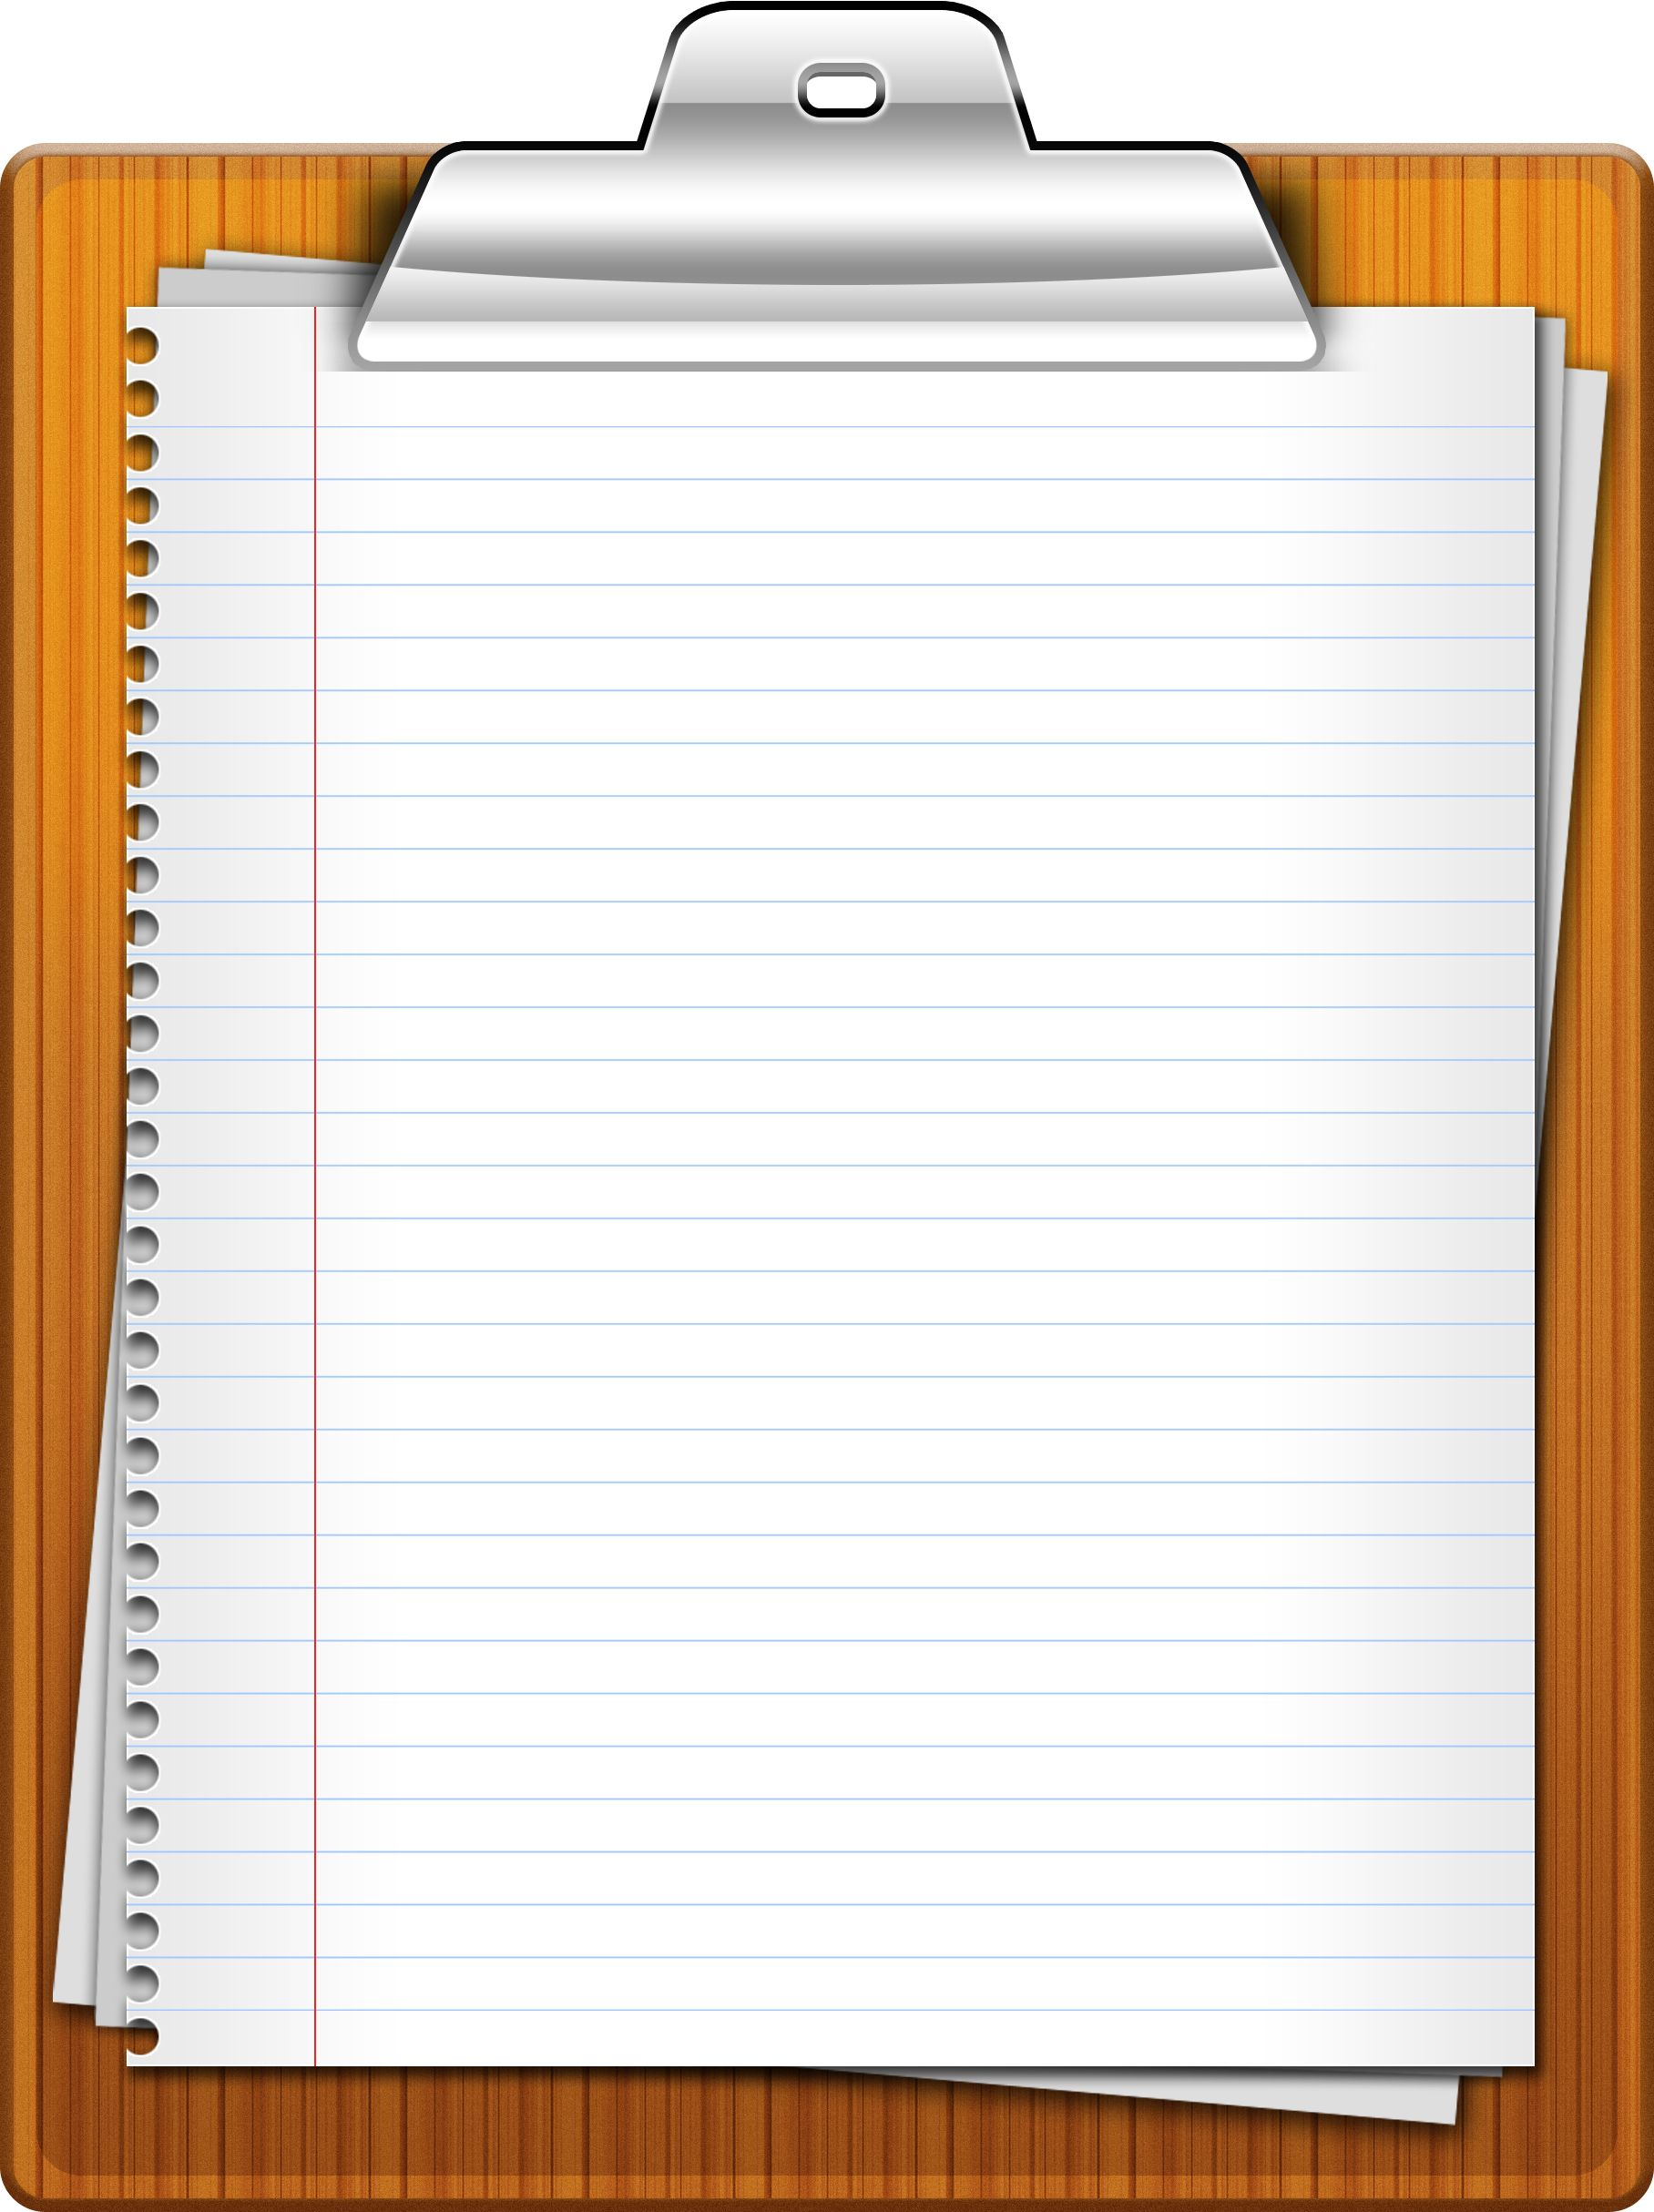 Clipboard clipart lined page. Boards pinterest clipboards planners